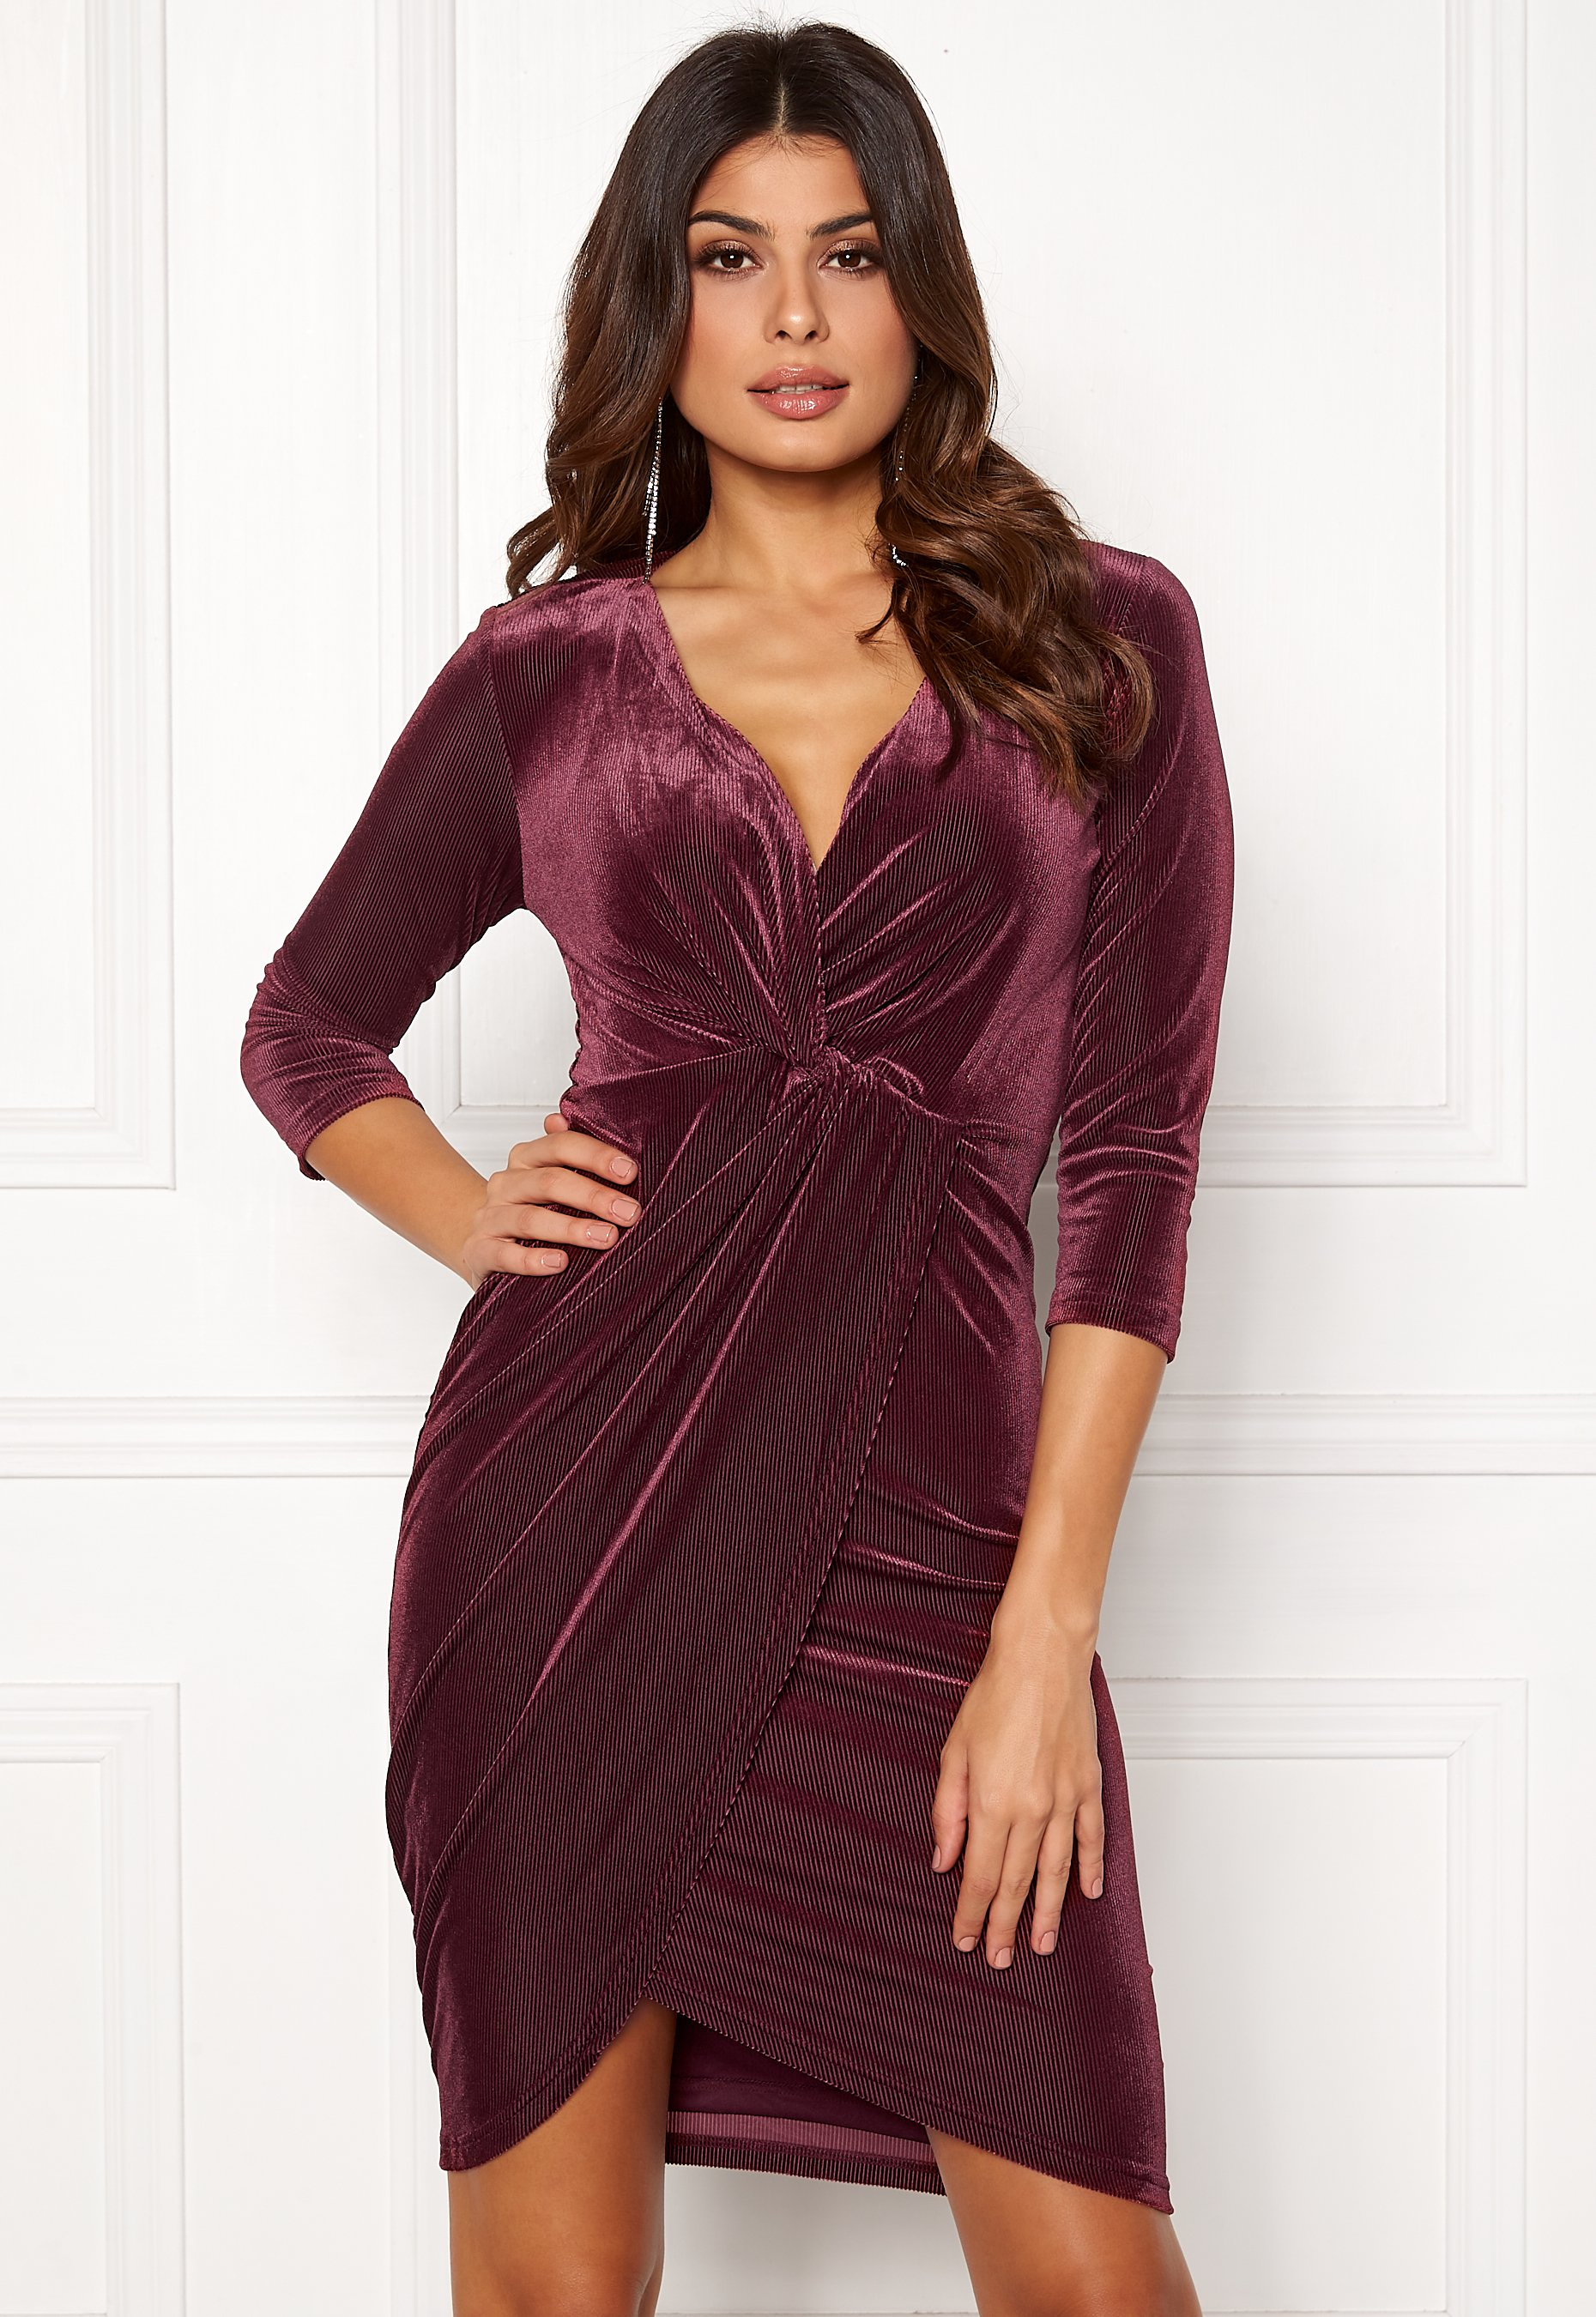 DRY LAKE Angelina Dress 608 Burgundy - Bubbleroom fe9b82c6cc87a